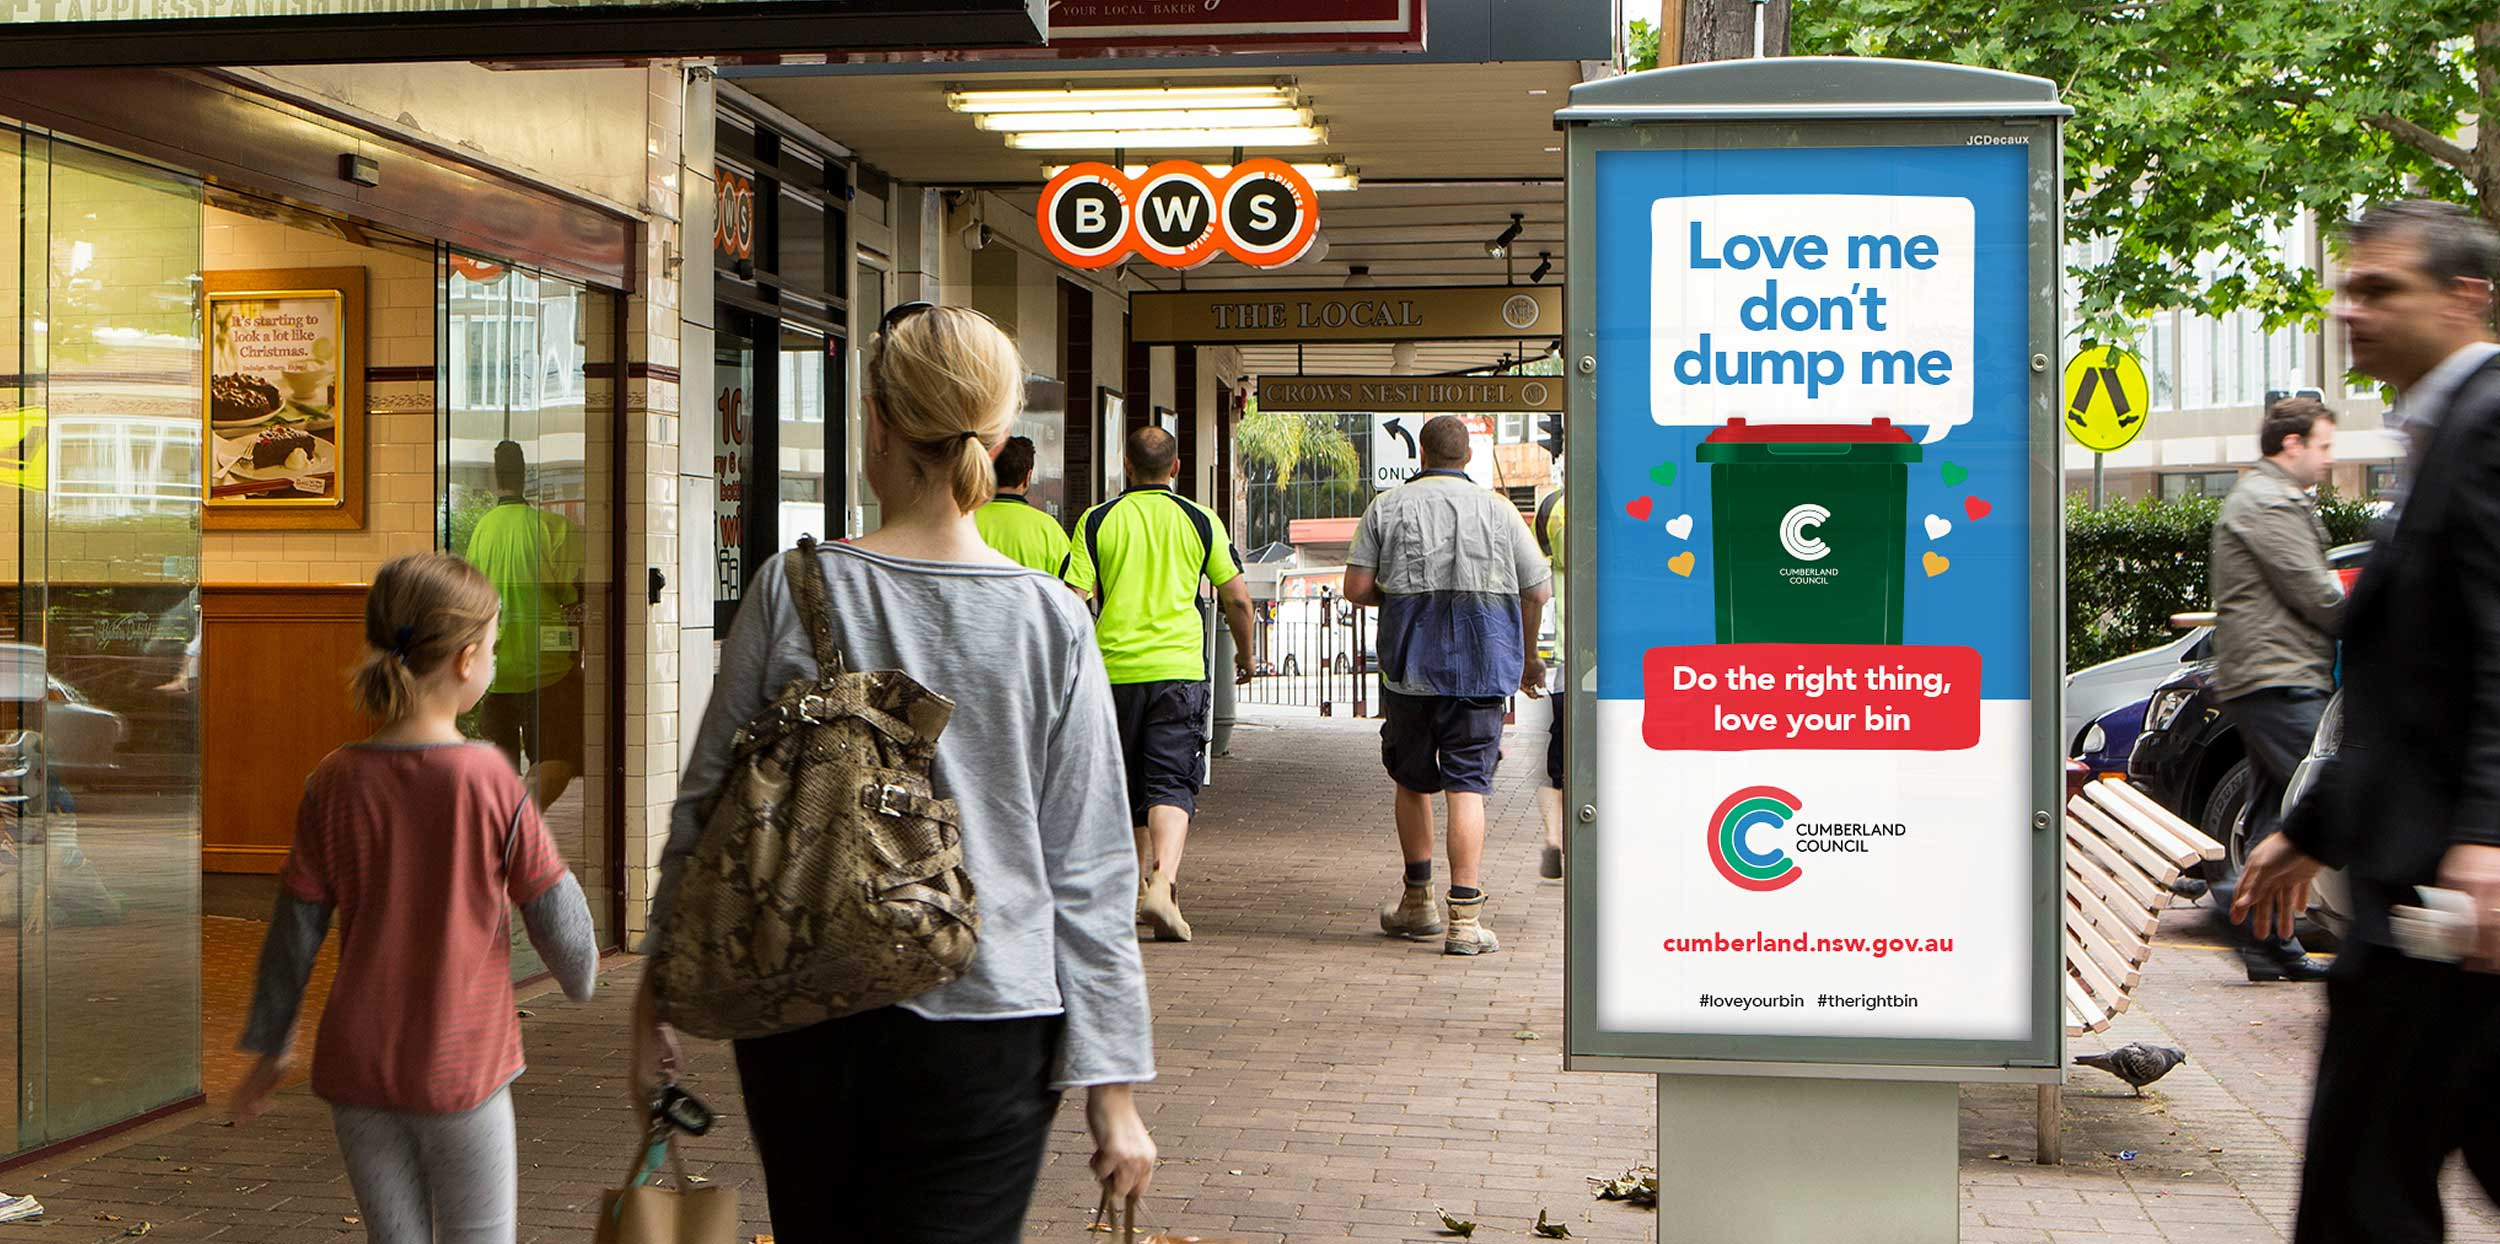 Handle-Branding-Cumberland-Council-NSW-Government-Waste-Education-Resources-Design_10.jpg